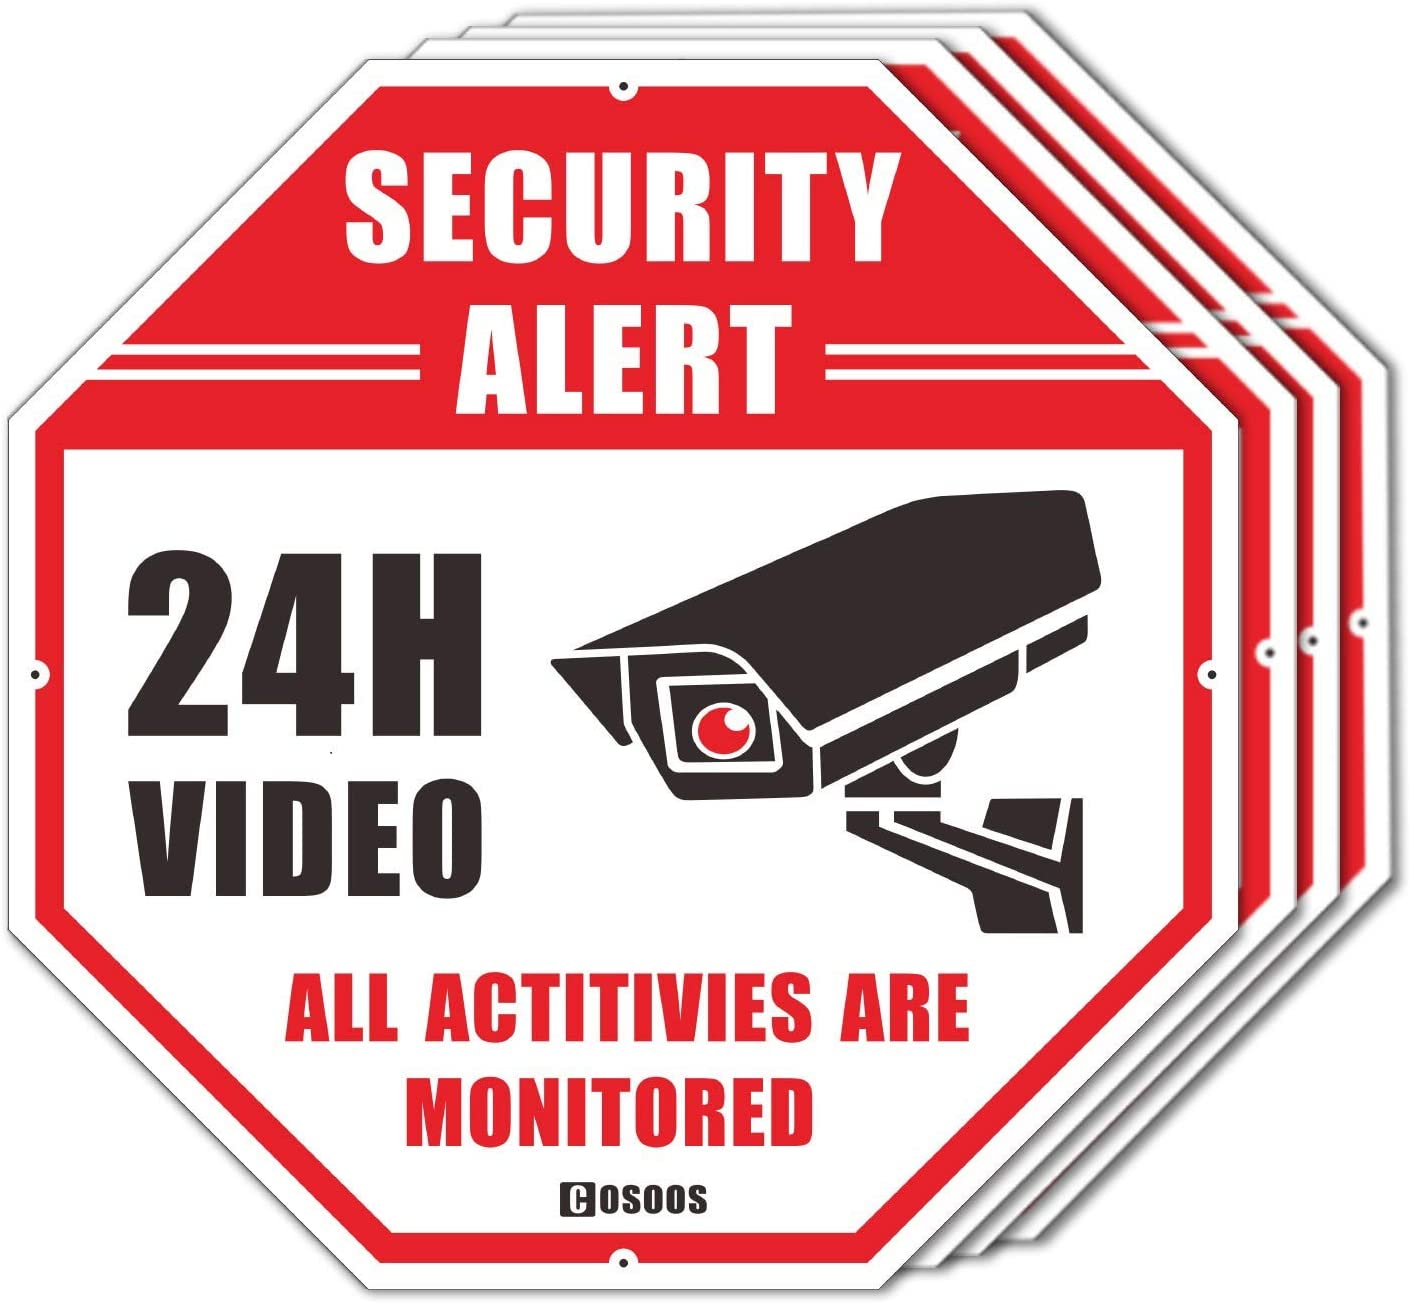 """4-Pack Video Surveillance Sign CCTV Security Alert, COSOOS Octagon 12""""x12"""" Rust Free Aluminum Reflective, Waterproof 24 Hour Security No Trespassing Warning Sign for Home Surveillance Camera System"""